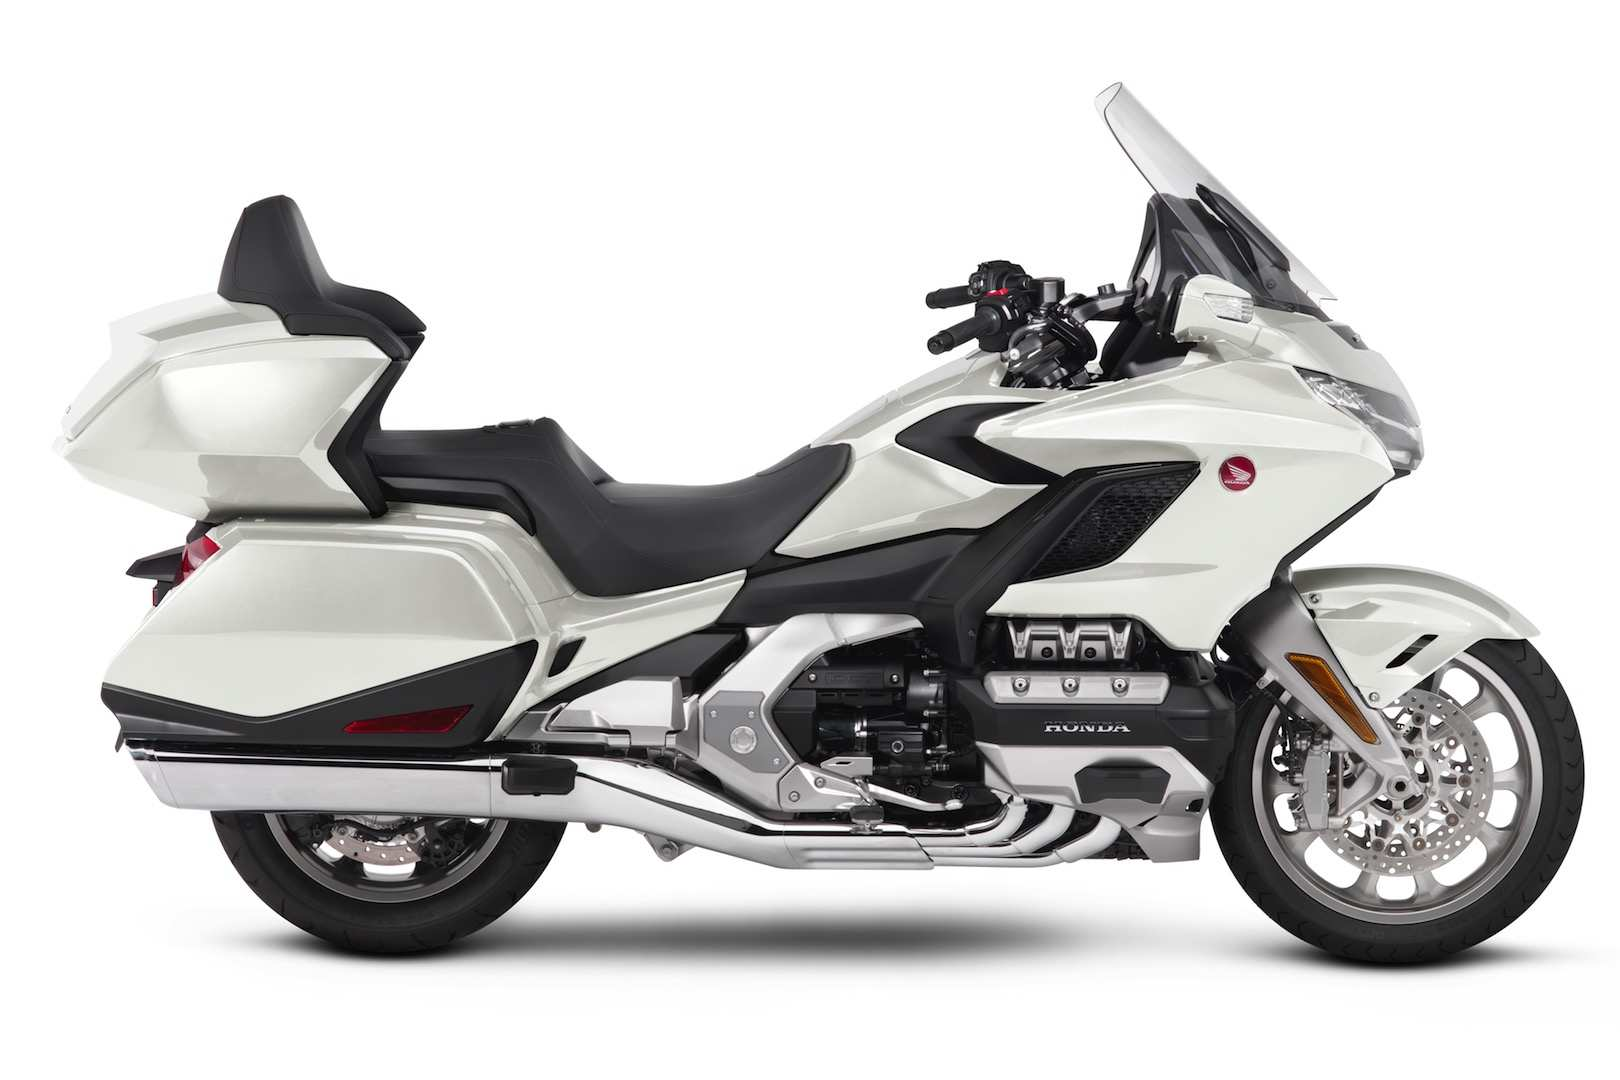 2020 Goldwing Review.74 Great 2020 Honda Goldwing Colors New Review By 2020 Honda